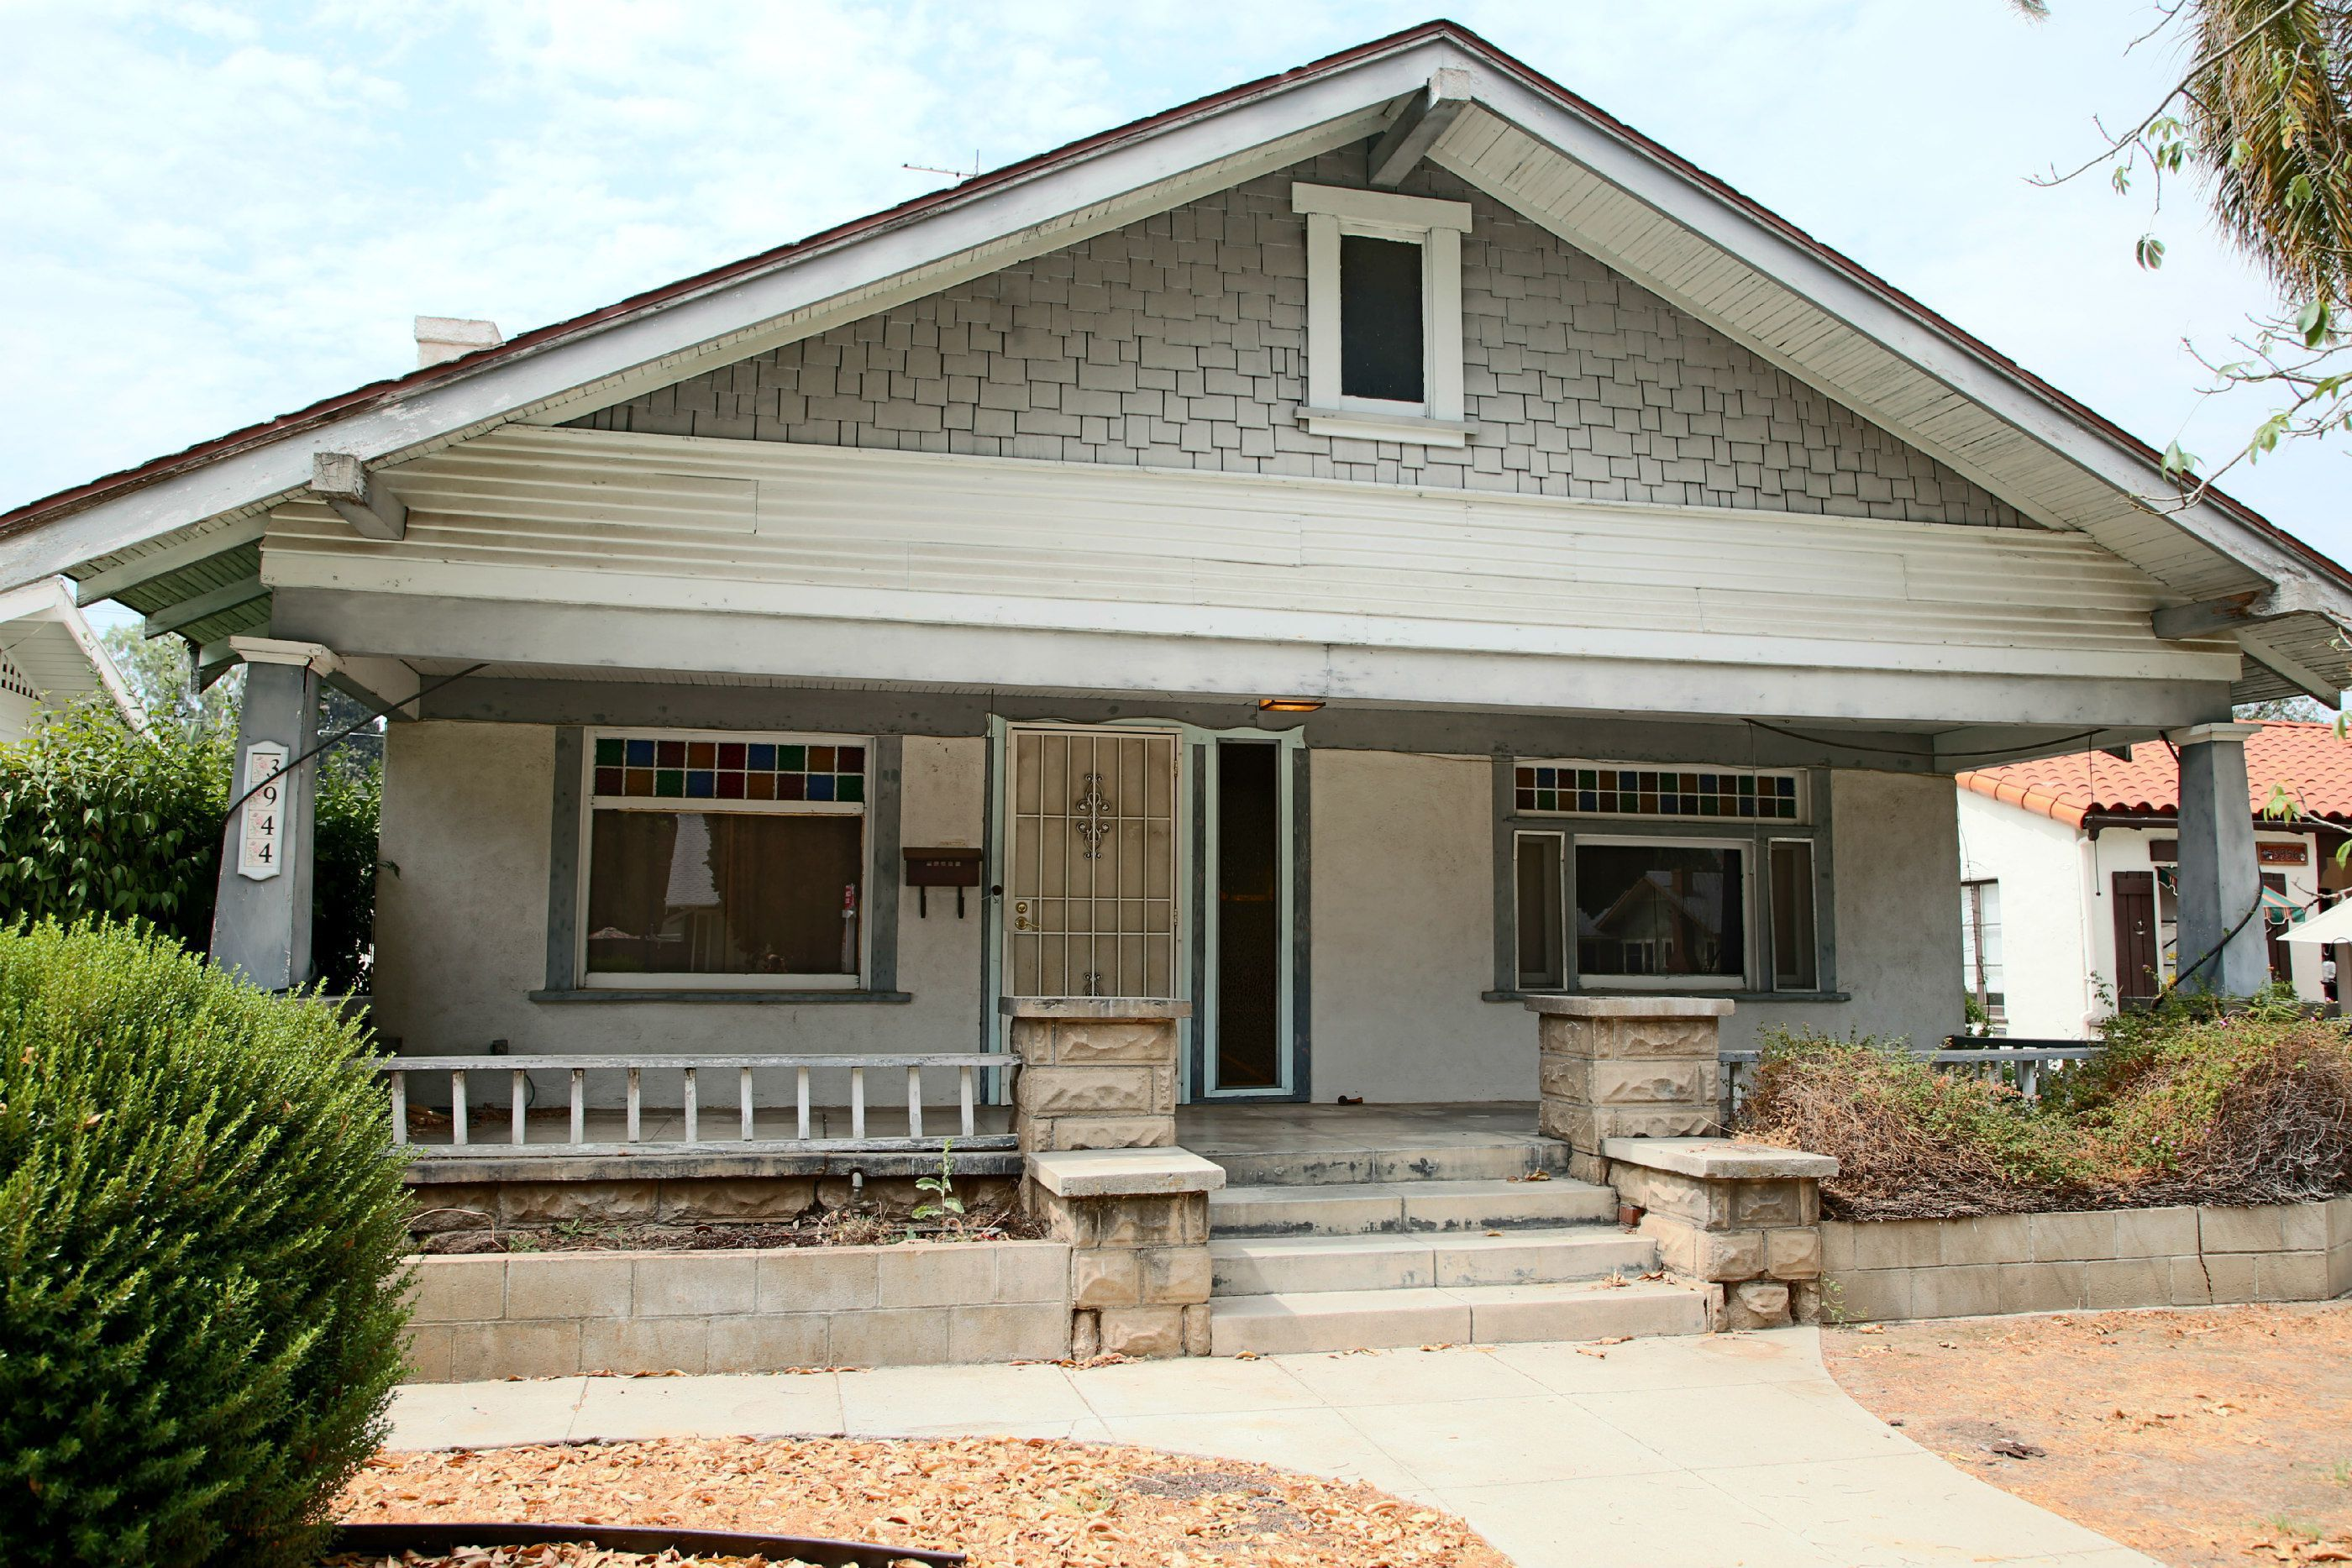 3944 Elmwood Ct, Riverside CA 92506 listed by THE SISTER TEAM